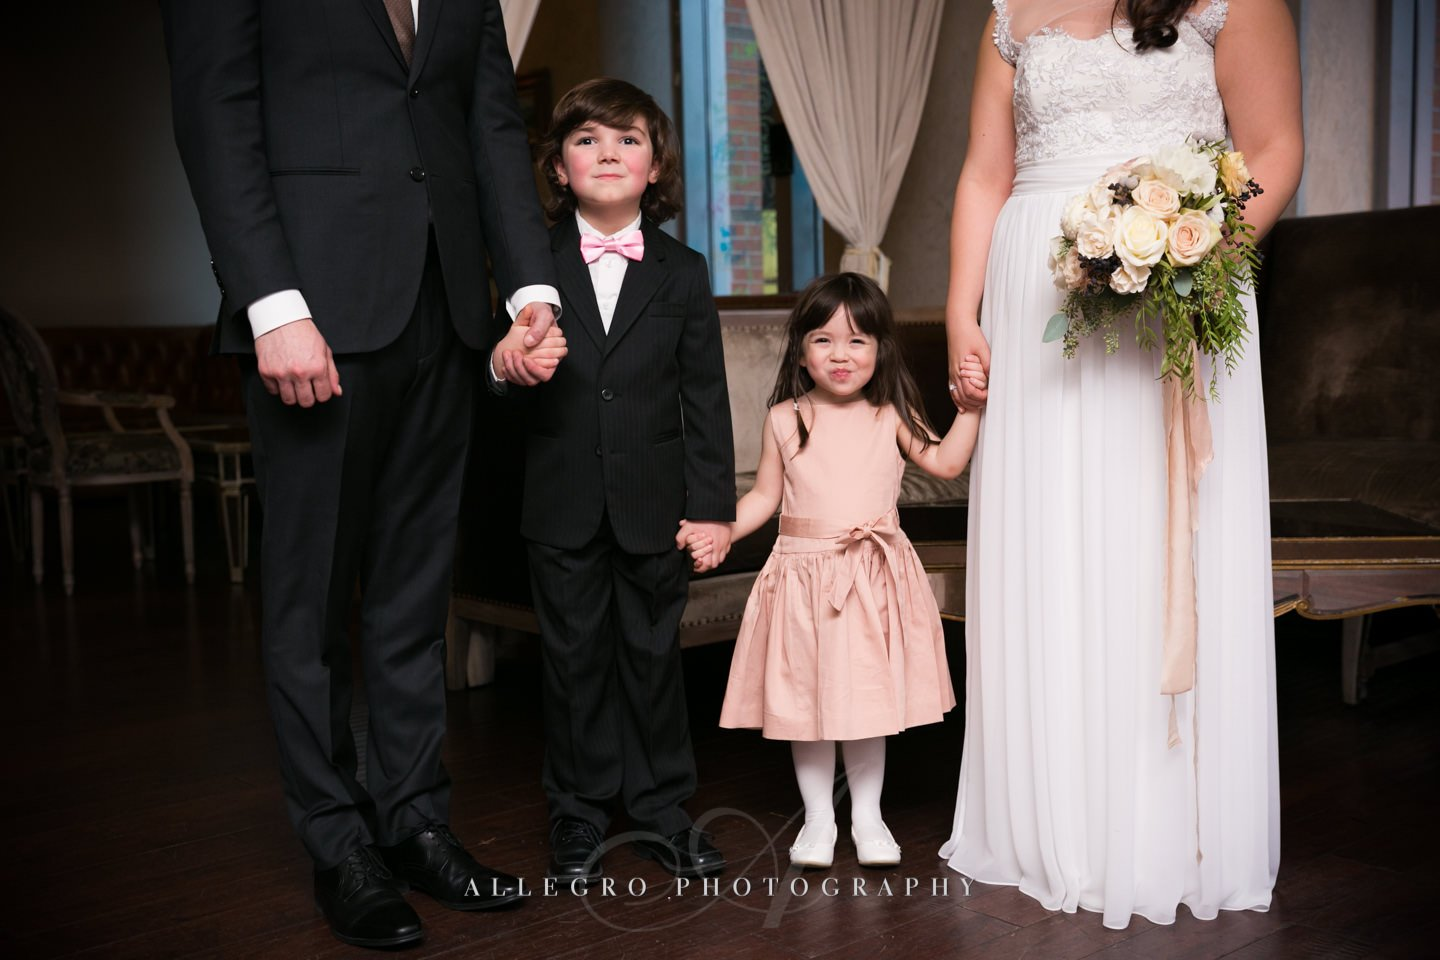 flower girl and ringbearer with the bride and groom -photo by Allegro Photography